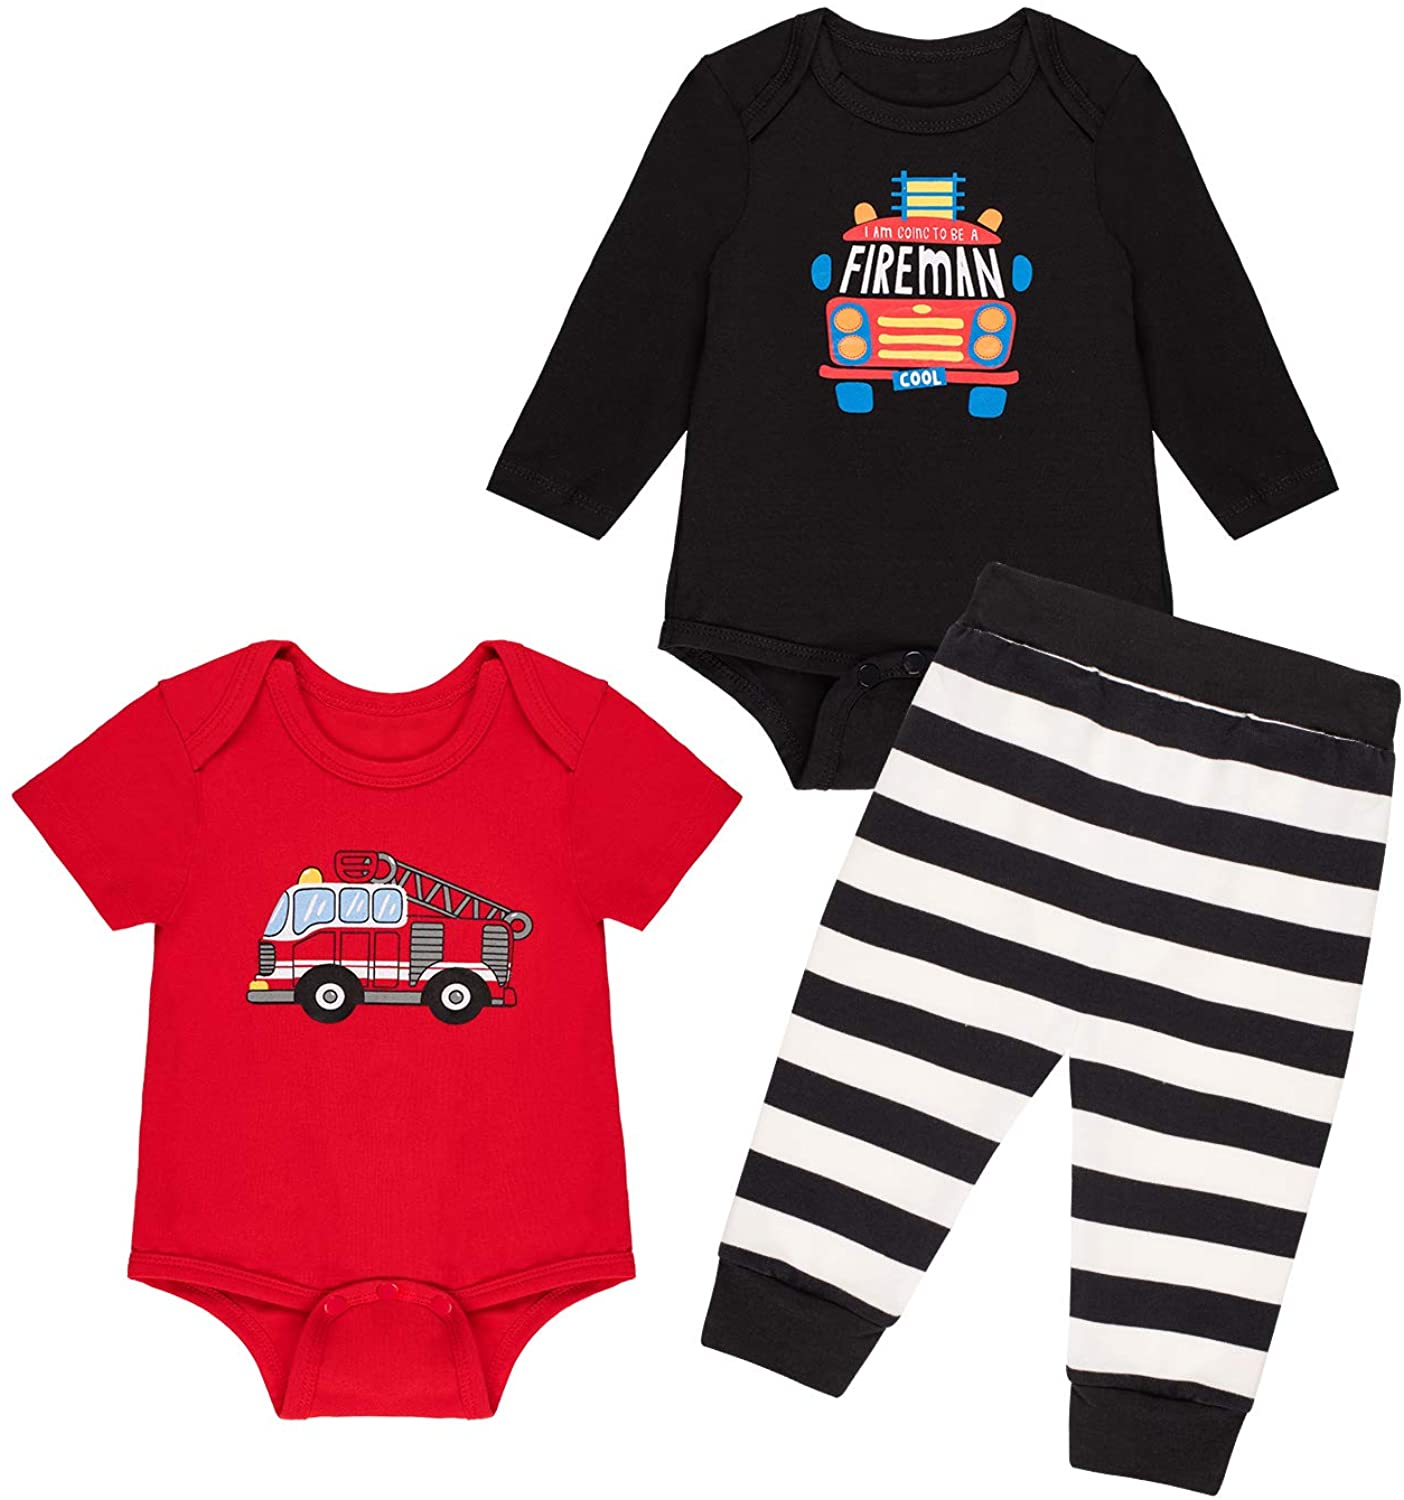 bakjuno Baby Boys Pajamas Fire Truck Pant Sets Cotton Newborn Car Sleepwear